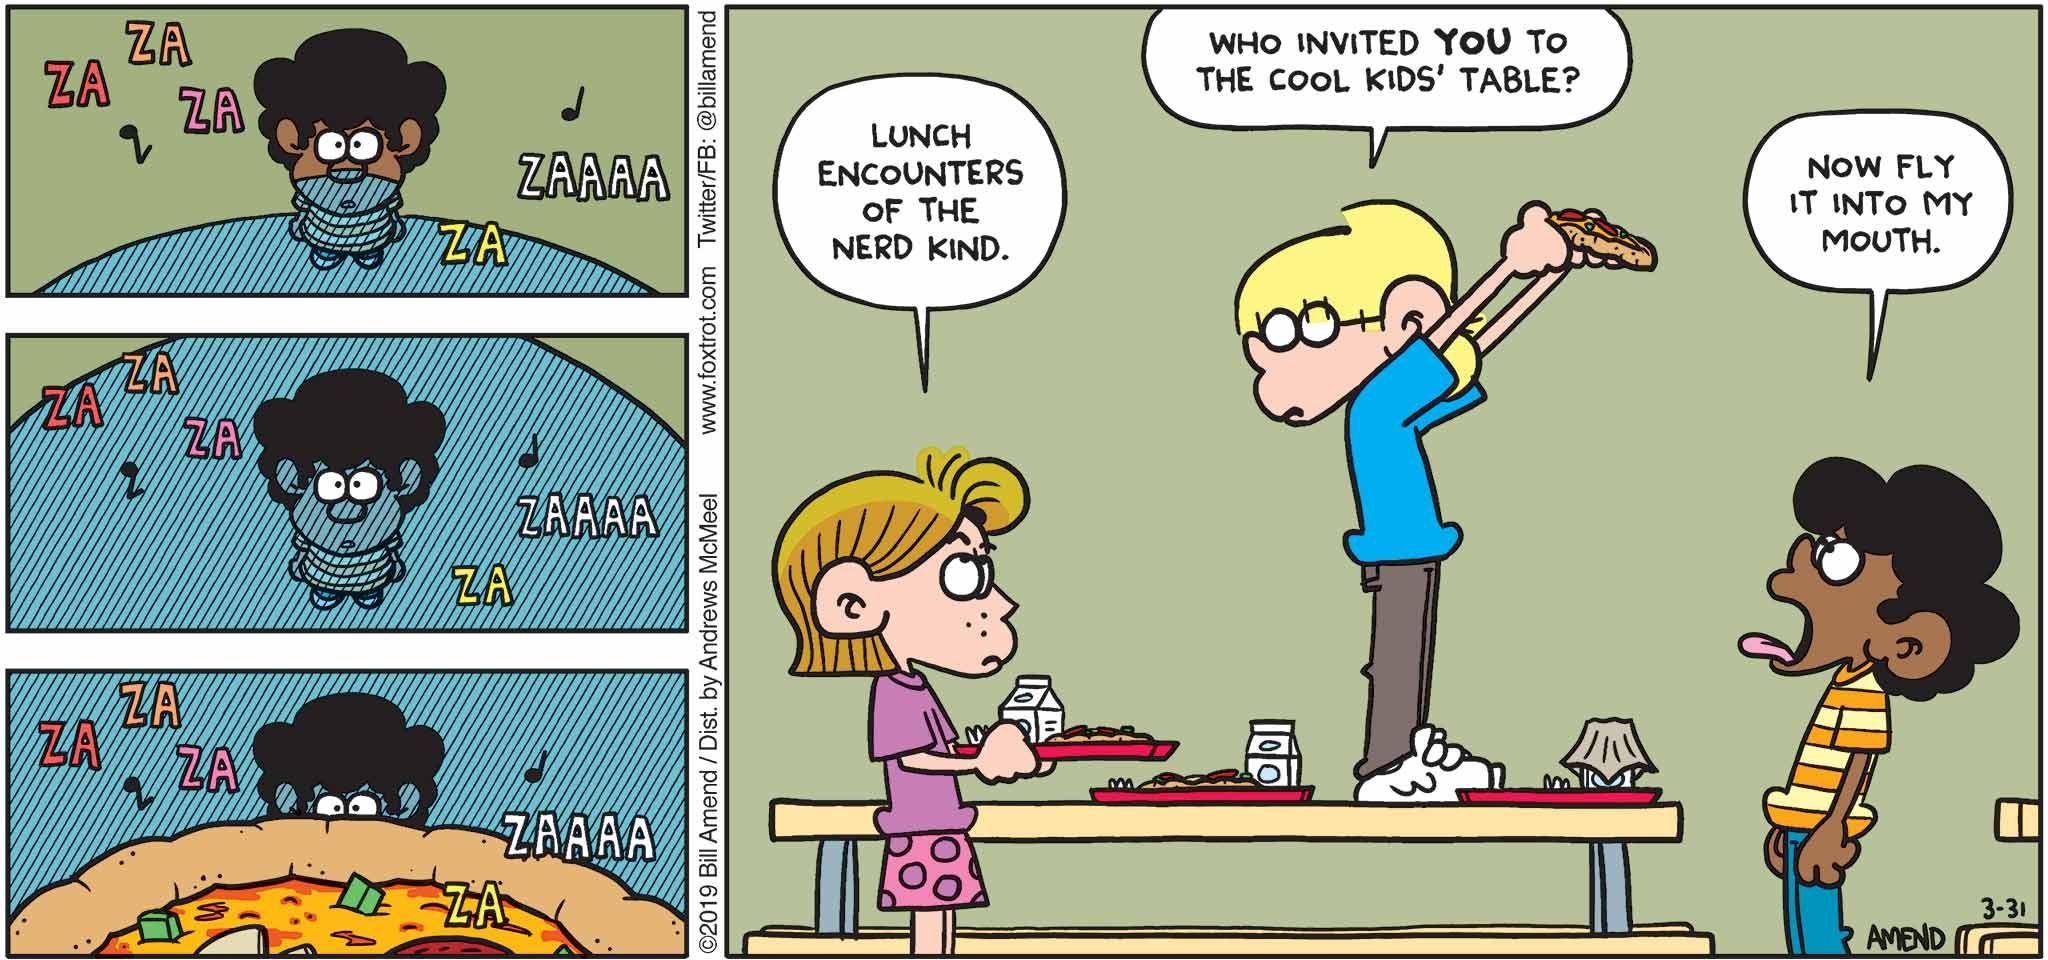 "FoxTrot by Bill Amend - ""Lunch Encounters"" published March 31, 2019 - Eileen says: Lunch encounters of the nerd kind. Jason: Who invited you to the cool kids' table? Marcus: Now fly it into my mouth."